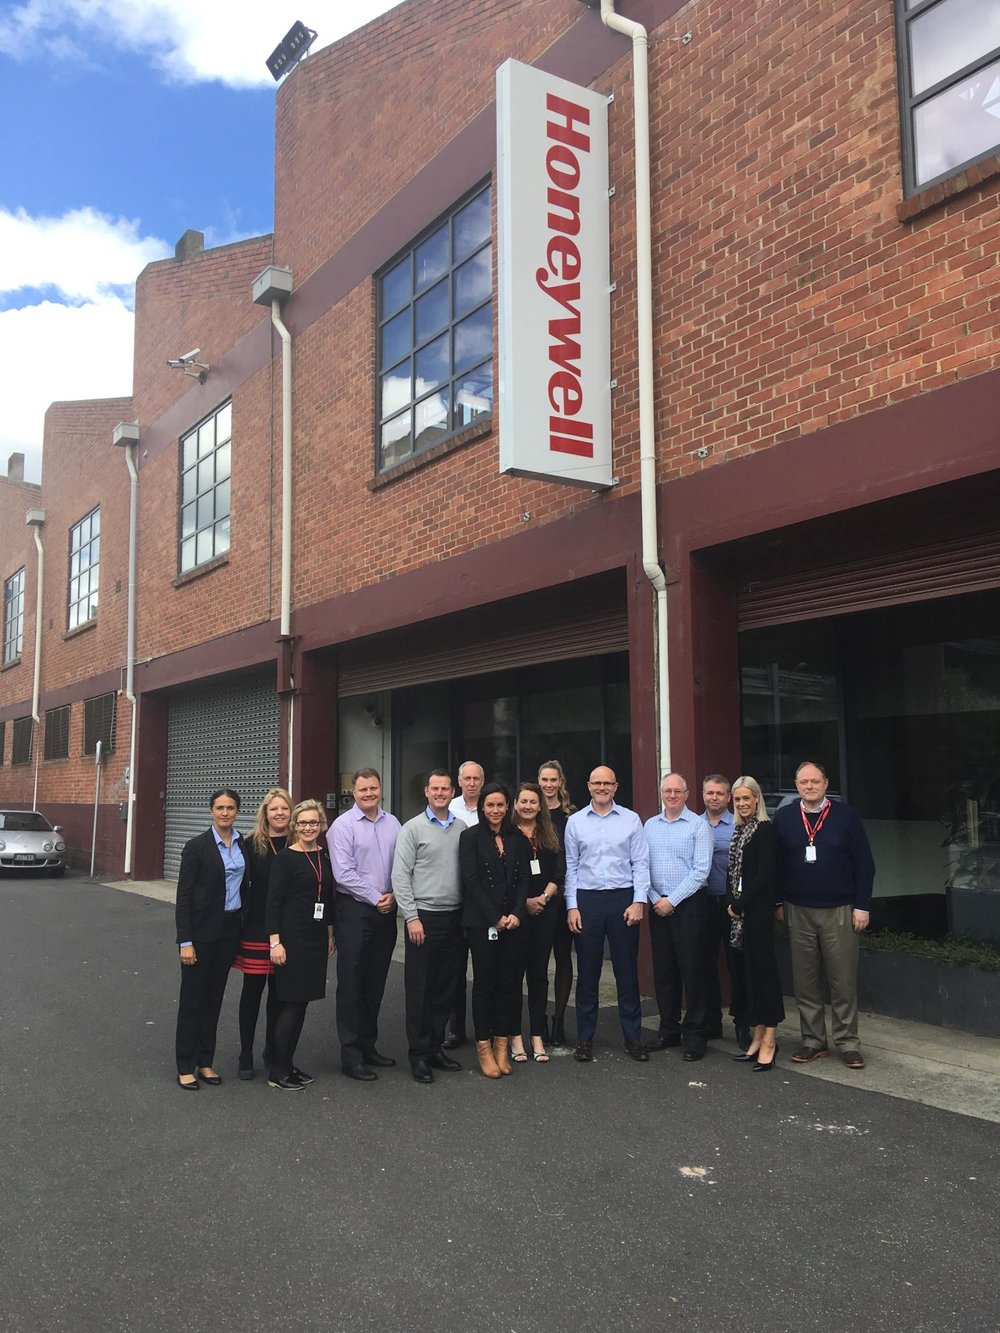 Members of Honeywell's senior leadership team of Honeywell during a break for an Aboriginal Cultural Awareness for Workplaces in Melbourne in 2017